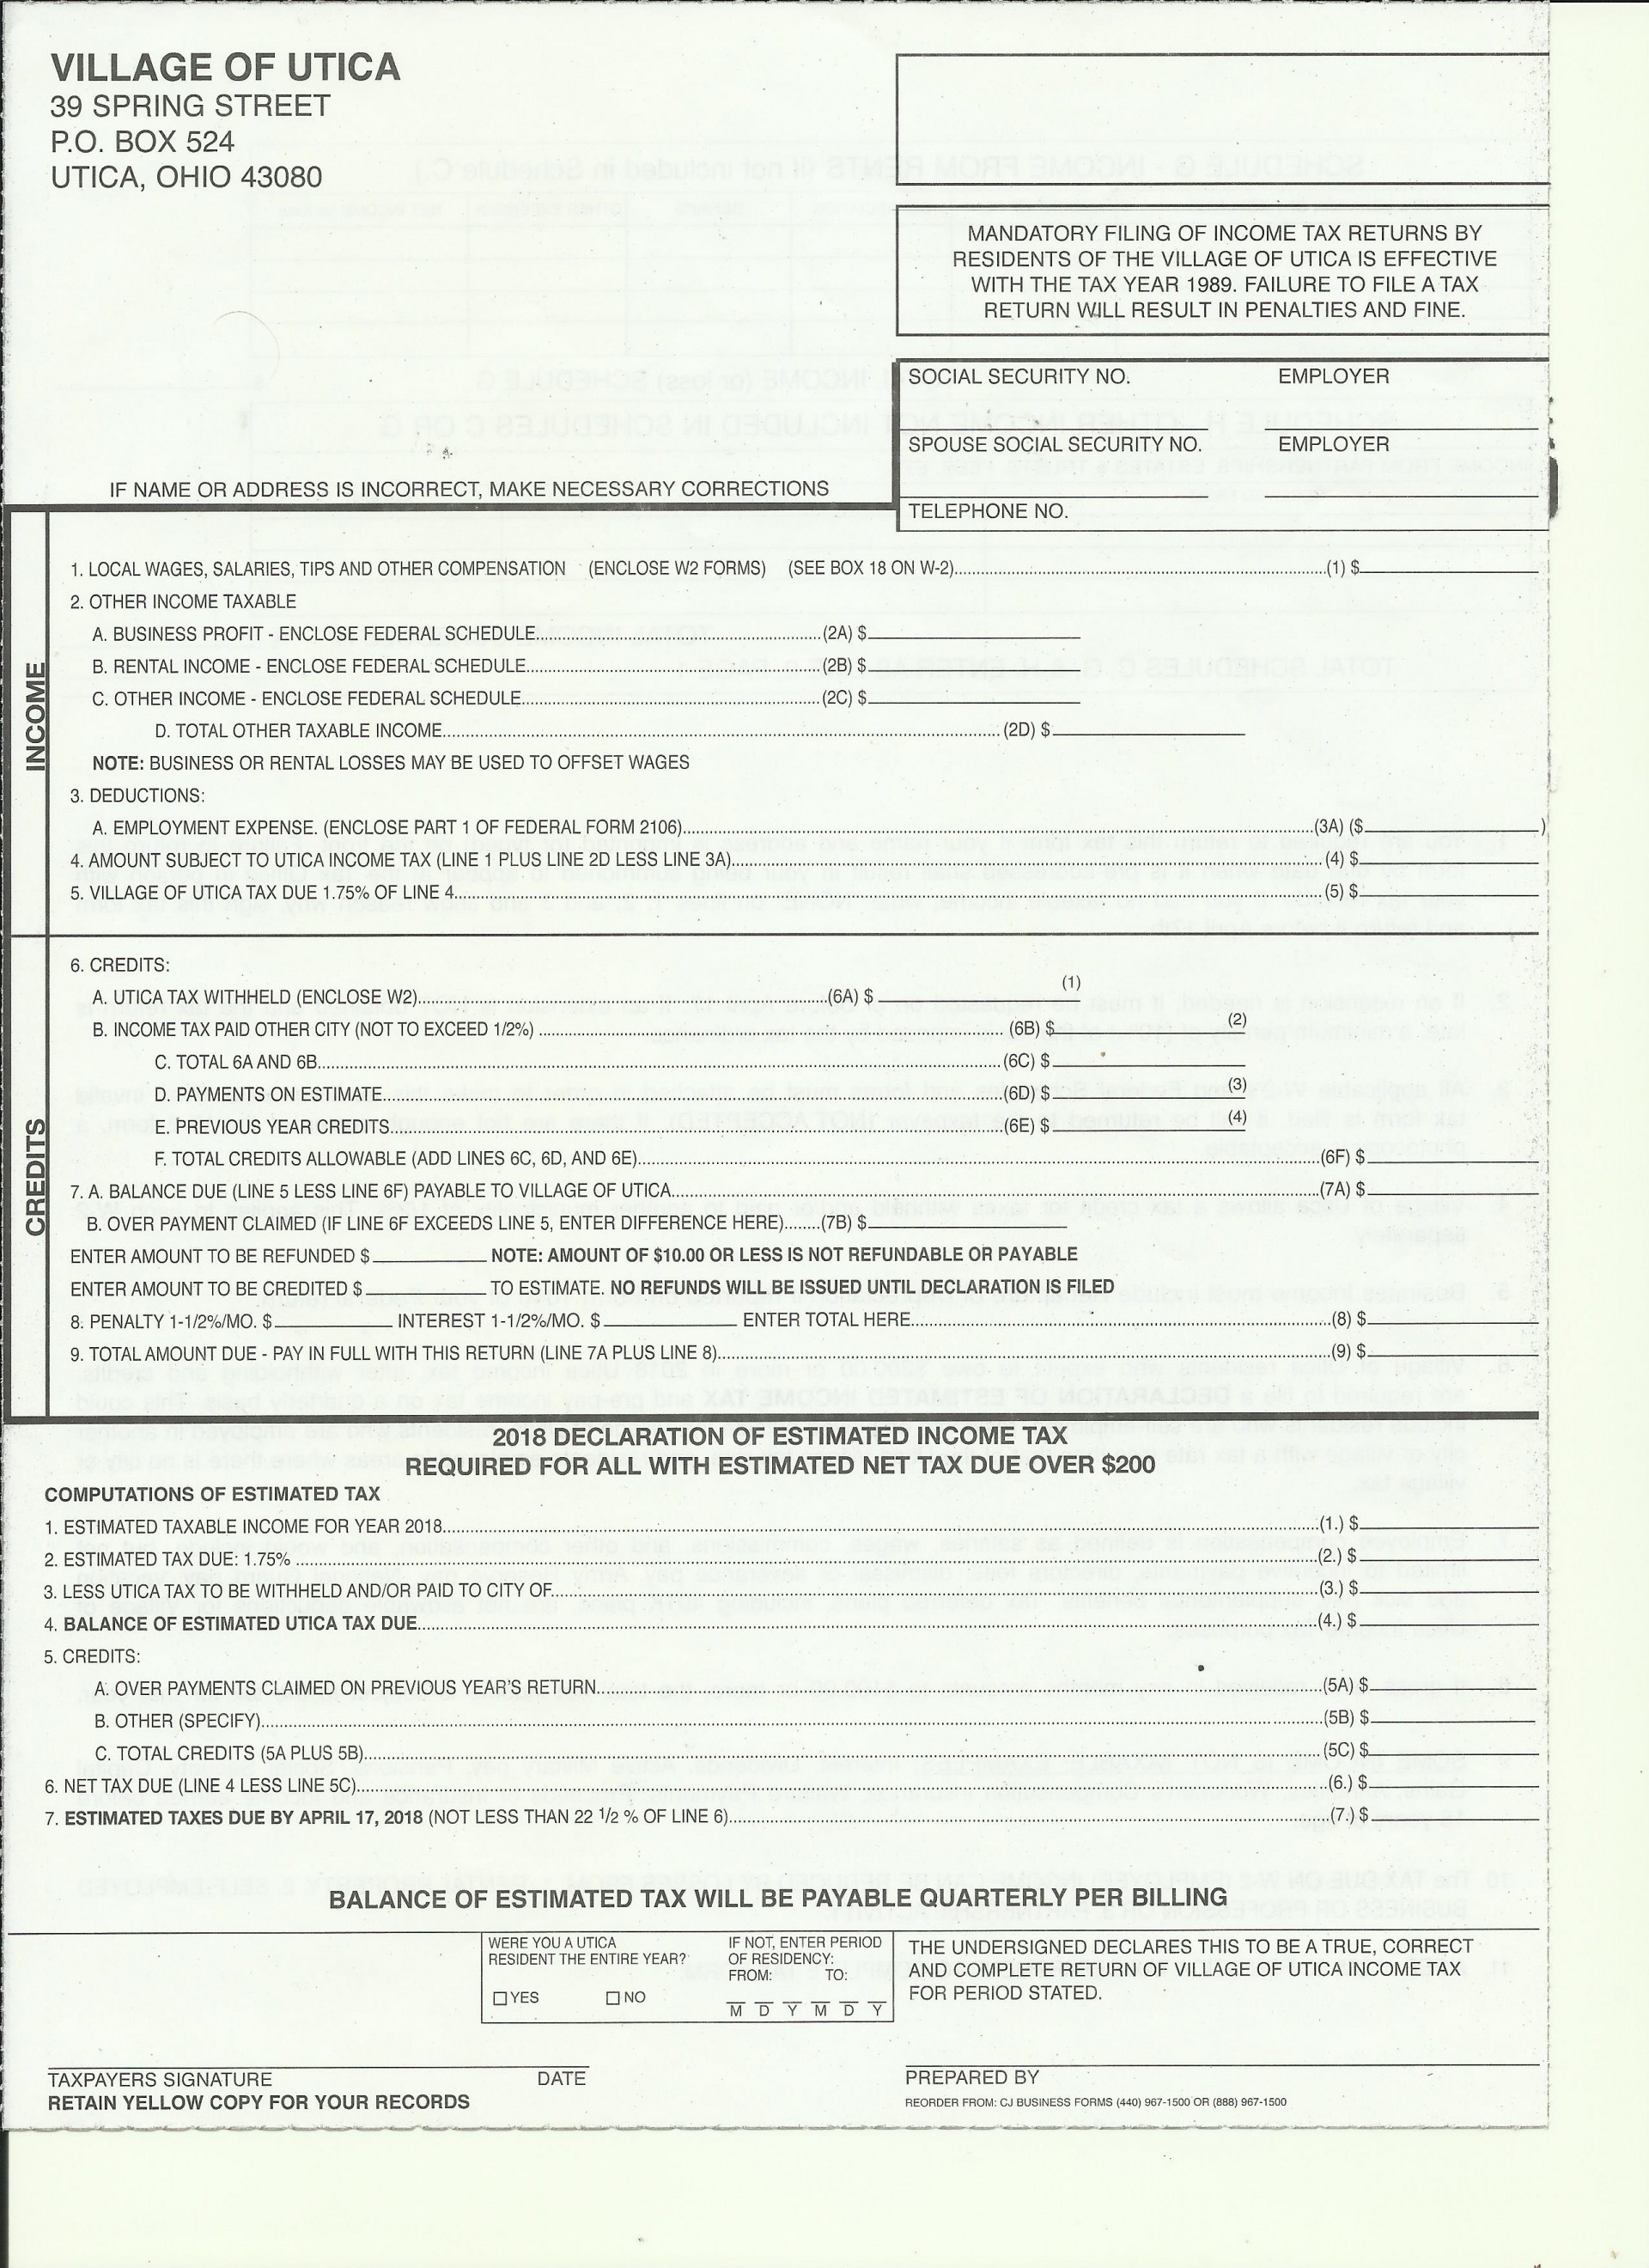 Vanguard 401k Withdrawal Form